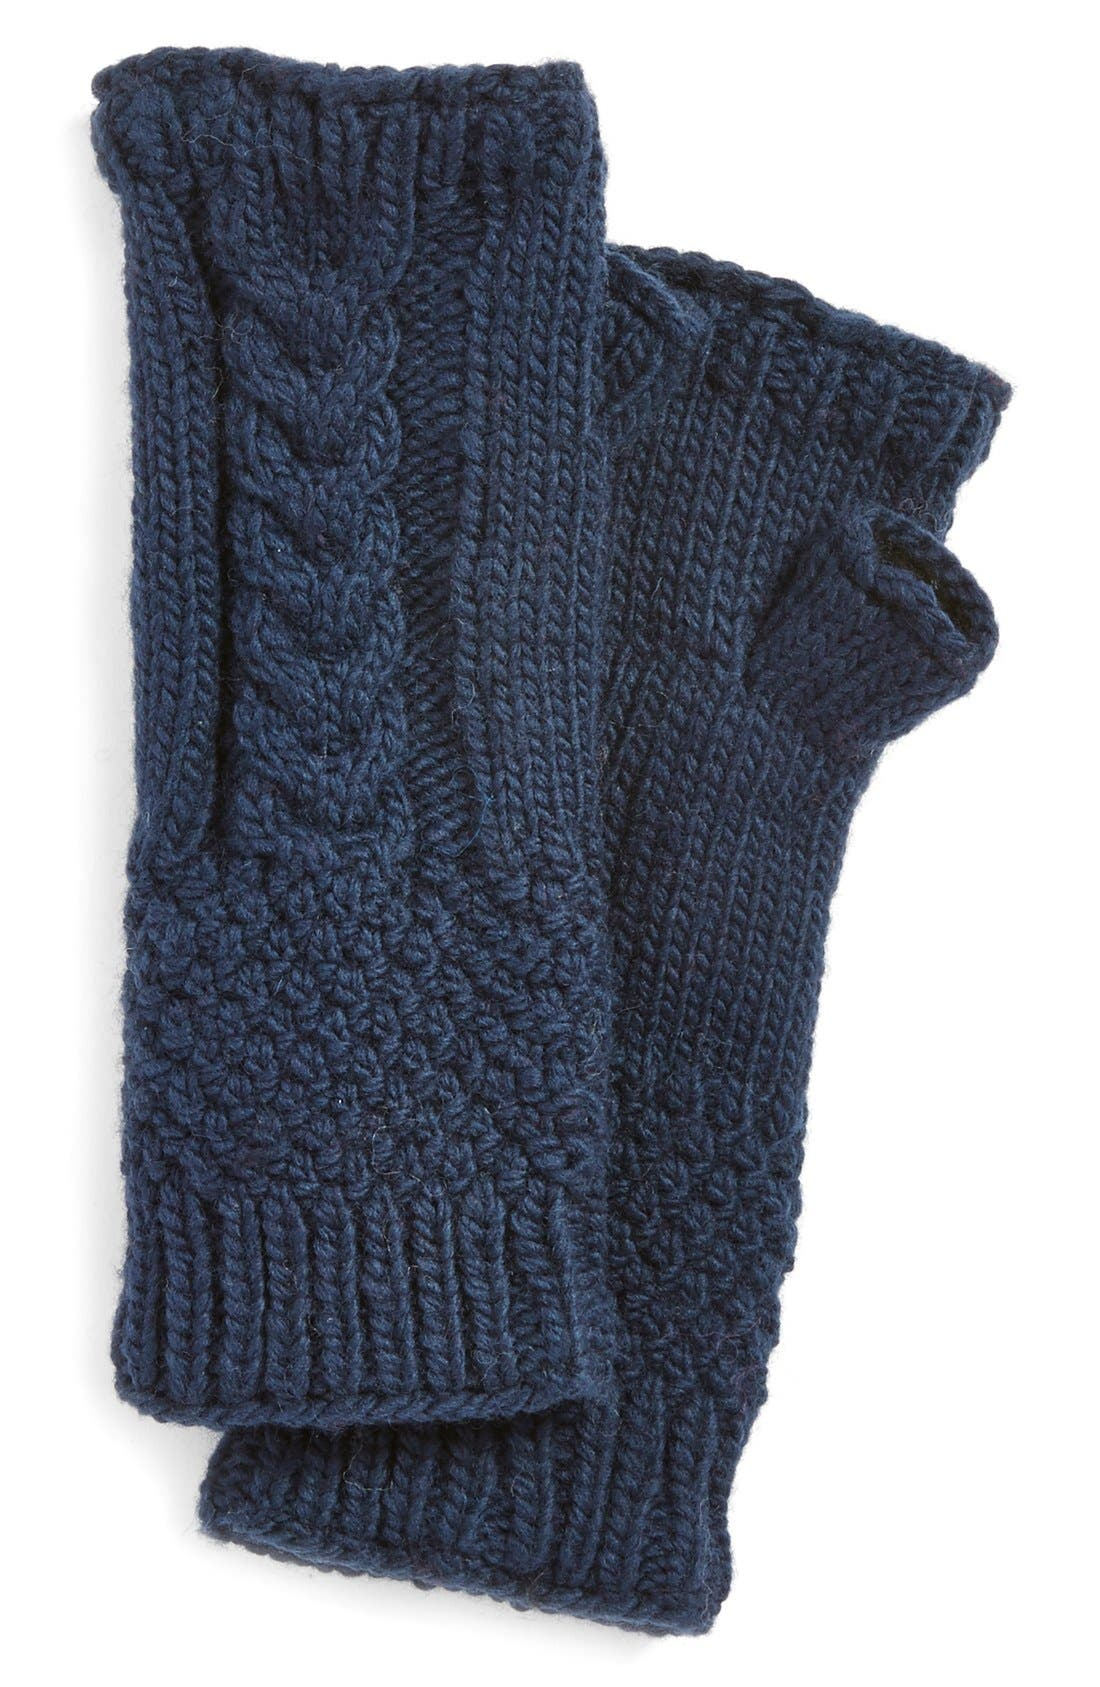 Alternate Image 1 Selected - NirvannaDesigns Cable Knit Hand Warmers